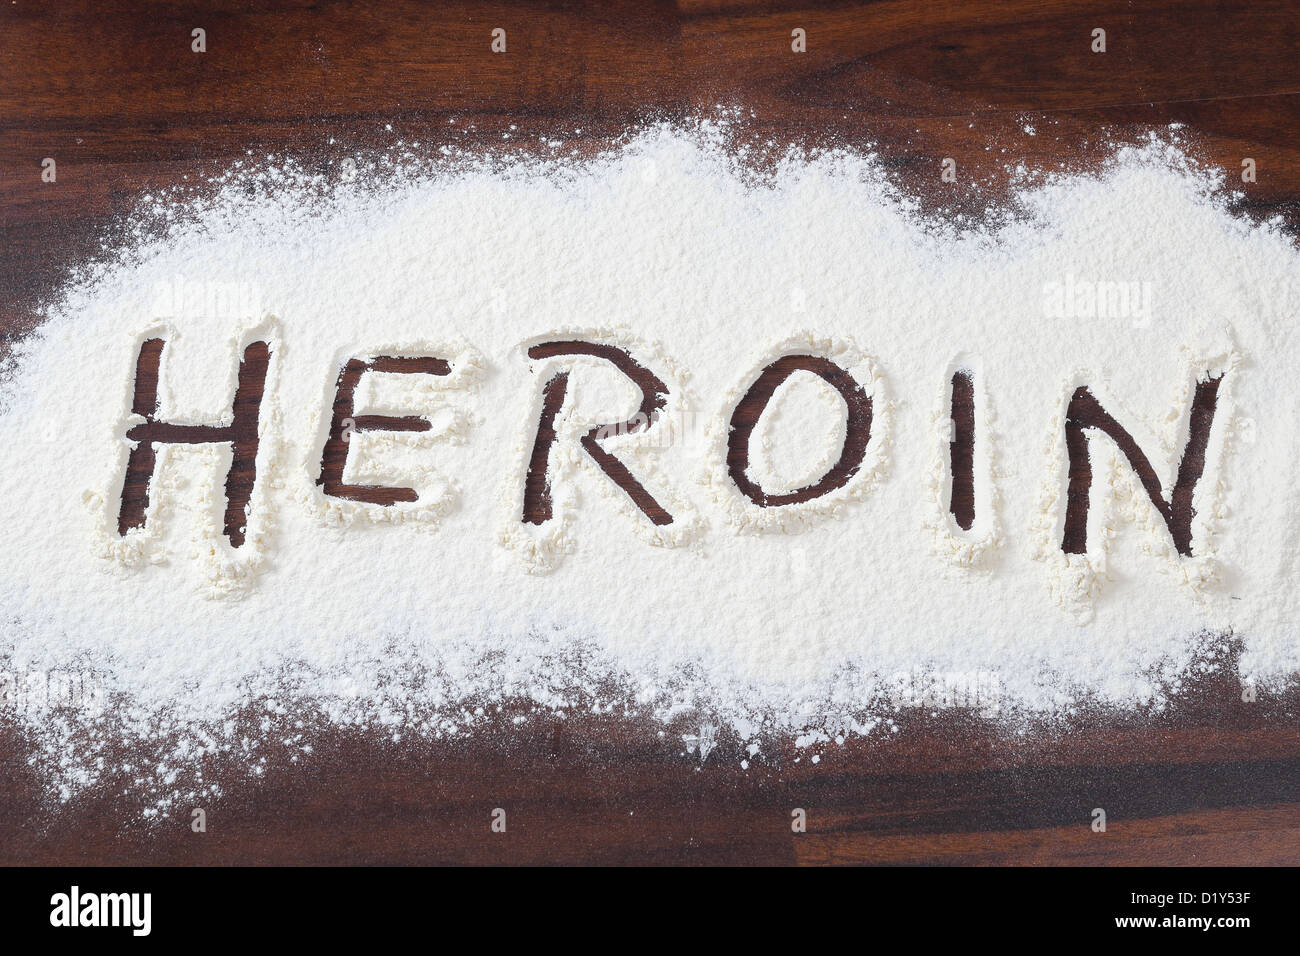 The word heroin written in a white powder - Stock Image